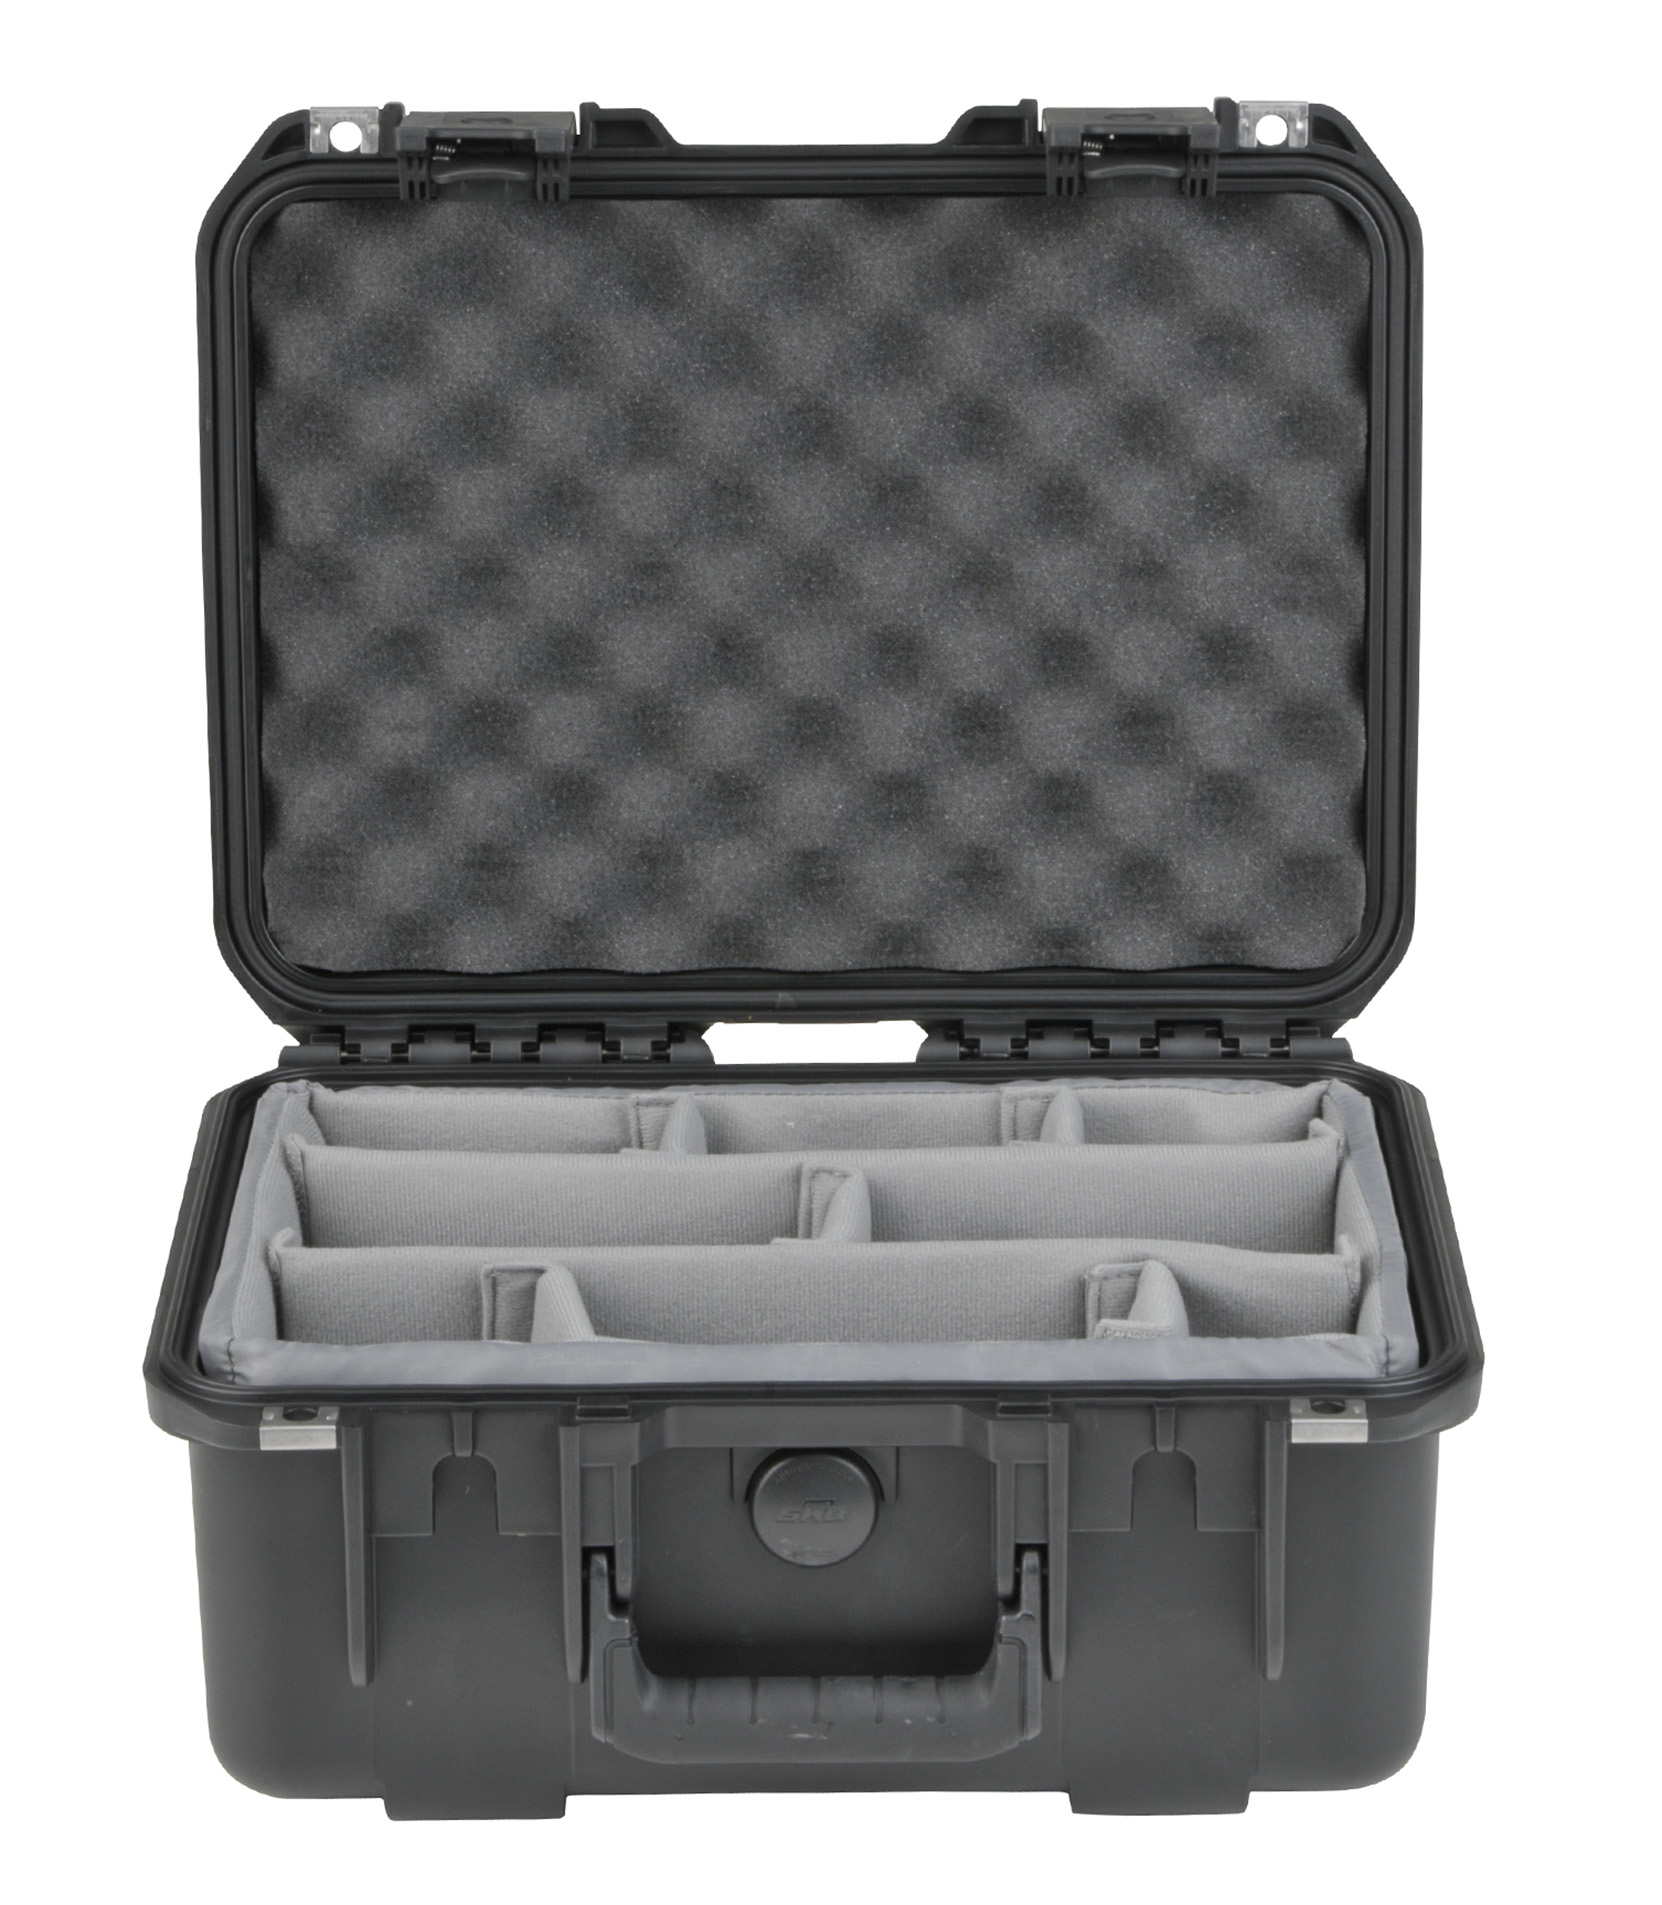 buy skb 3i 1309 6b d 13 x 9 x 6dividers